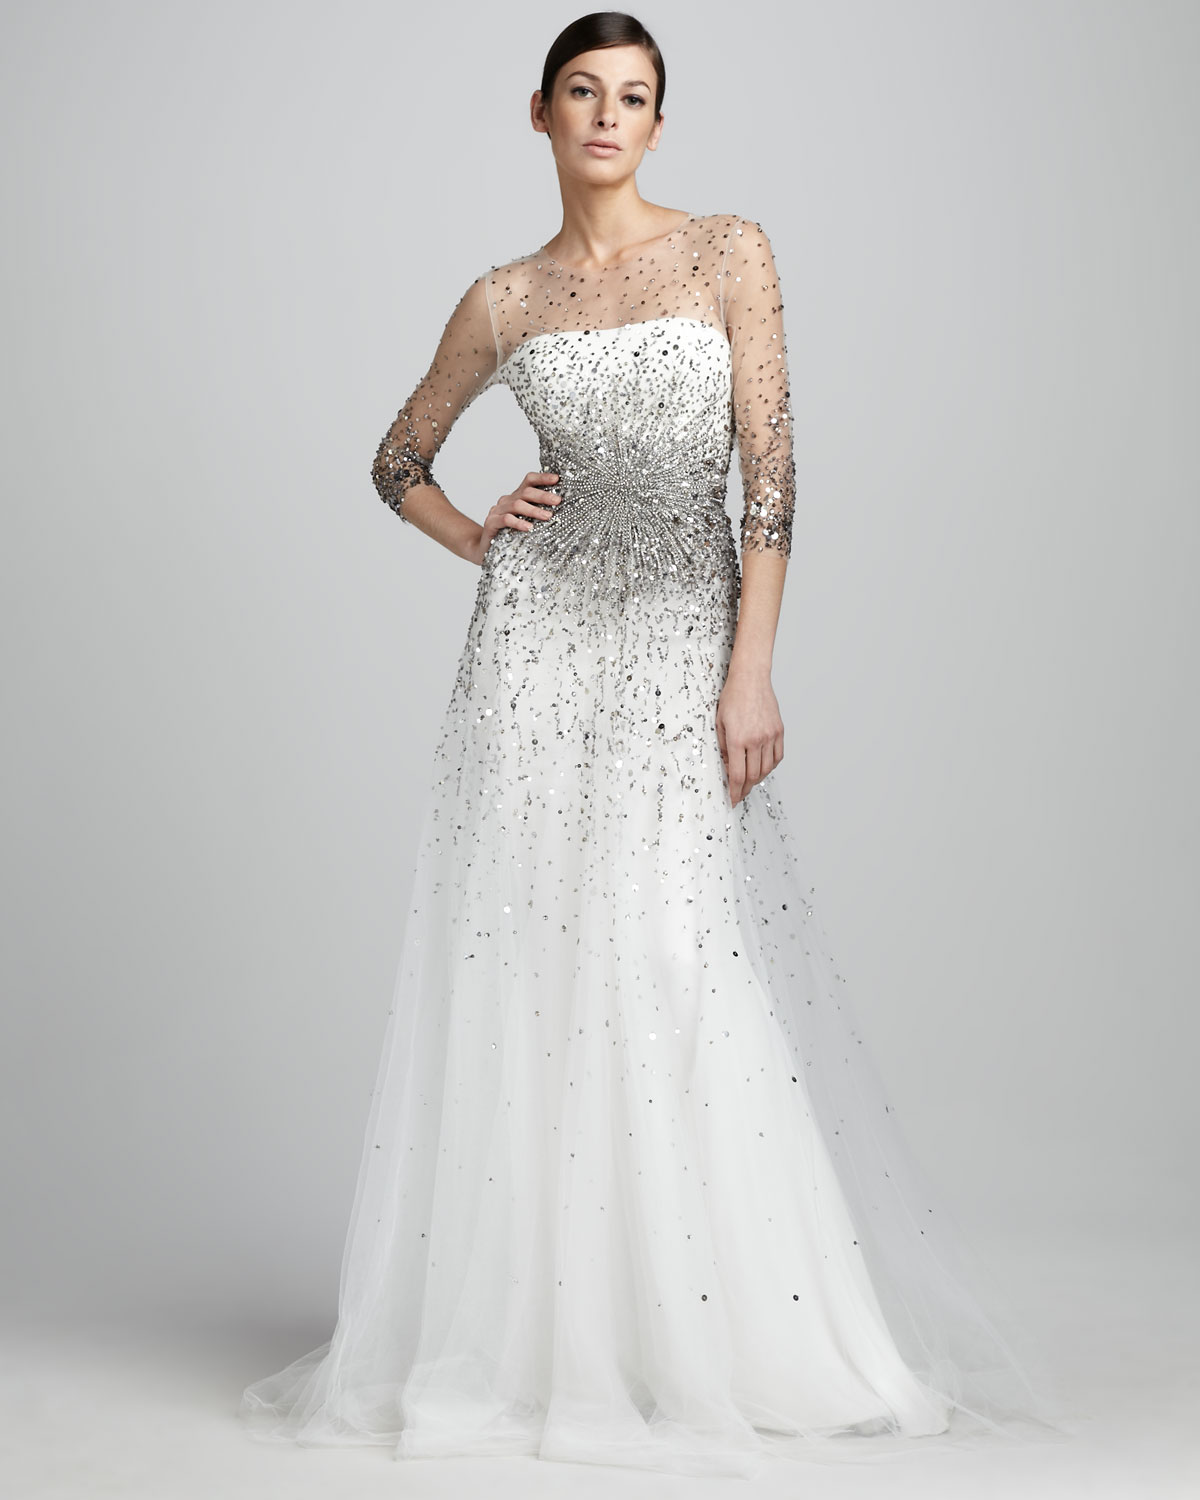 wedding dresses cold climates: Wedding Dresses NYC